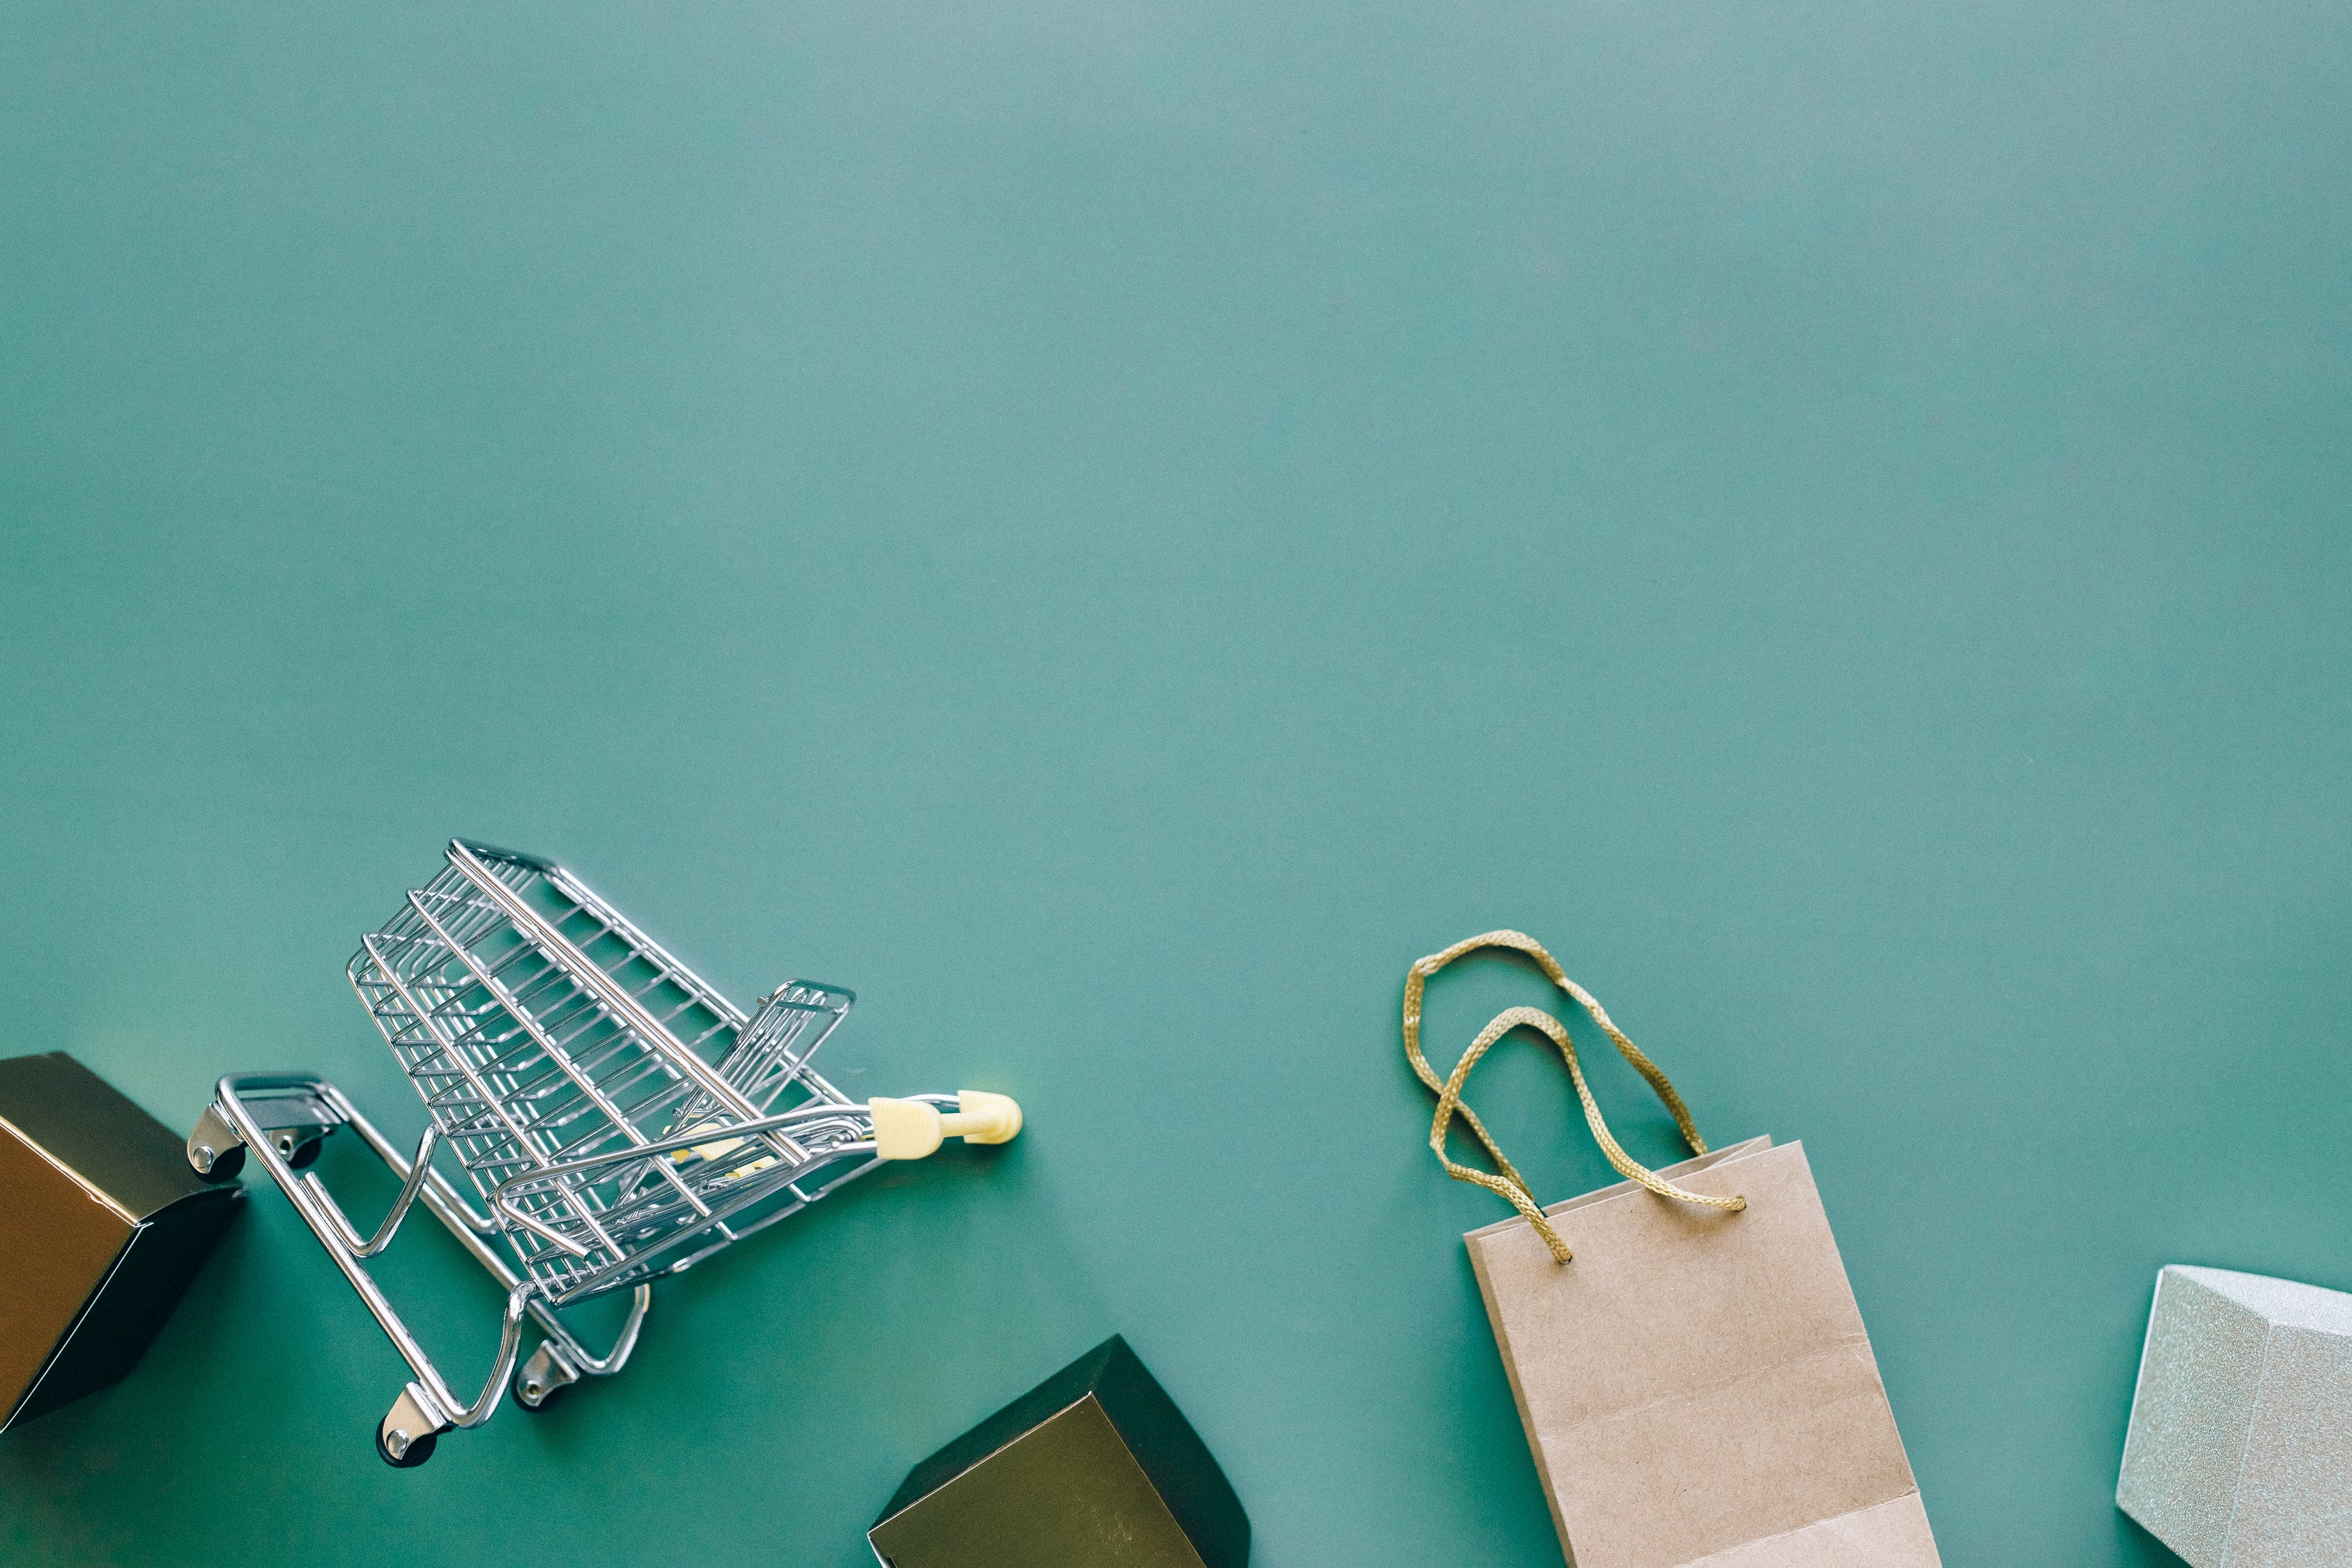 The Top 6 e-Commerce Platforms Your Business Needs and Why